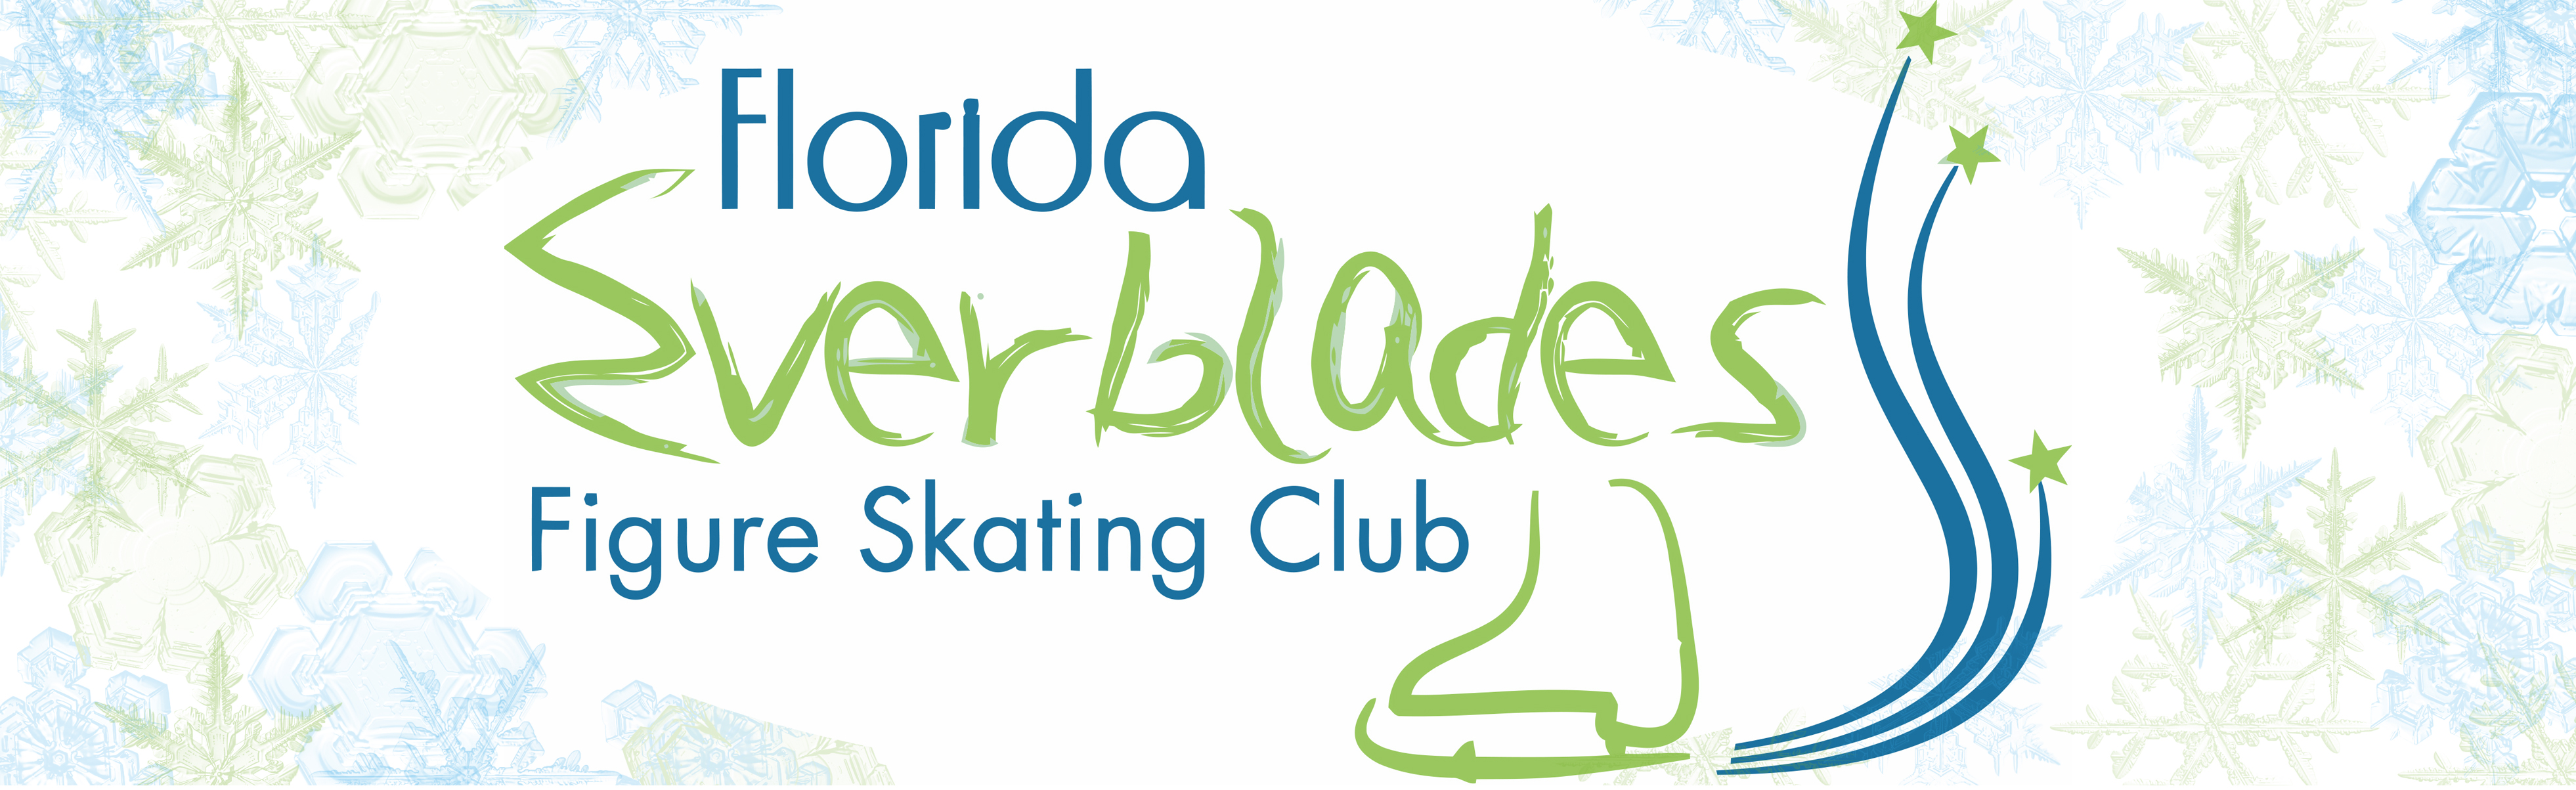 Florida Everblades Figure Skating Club